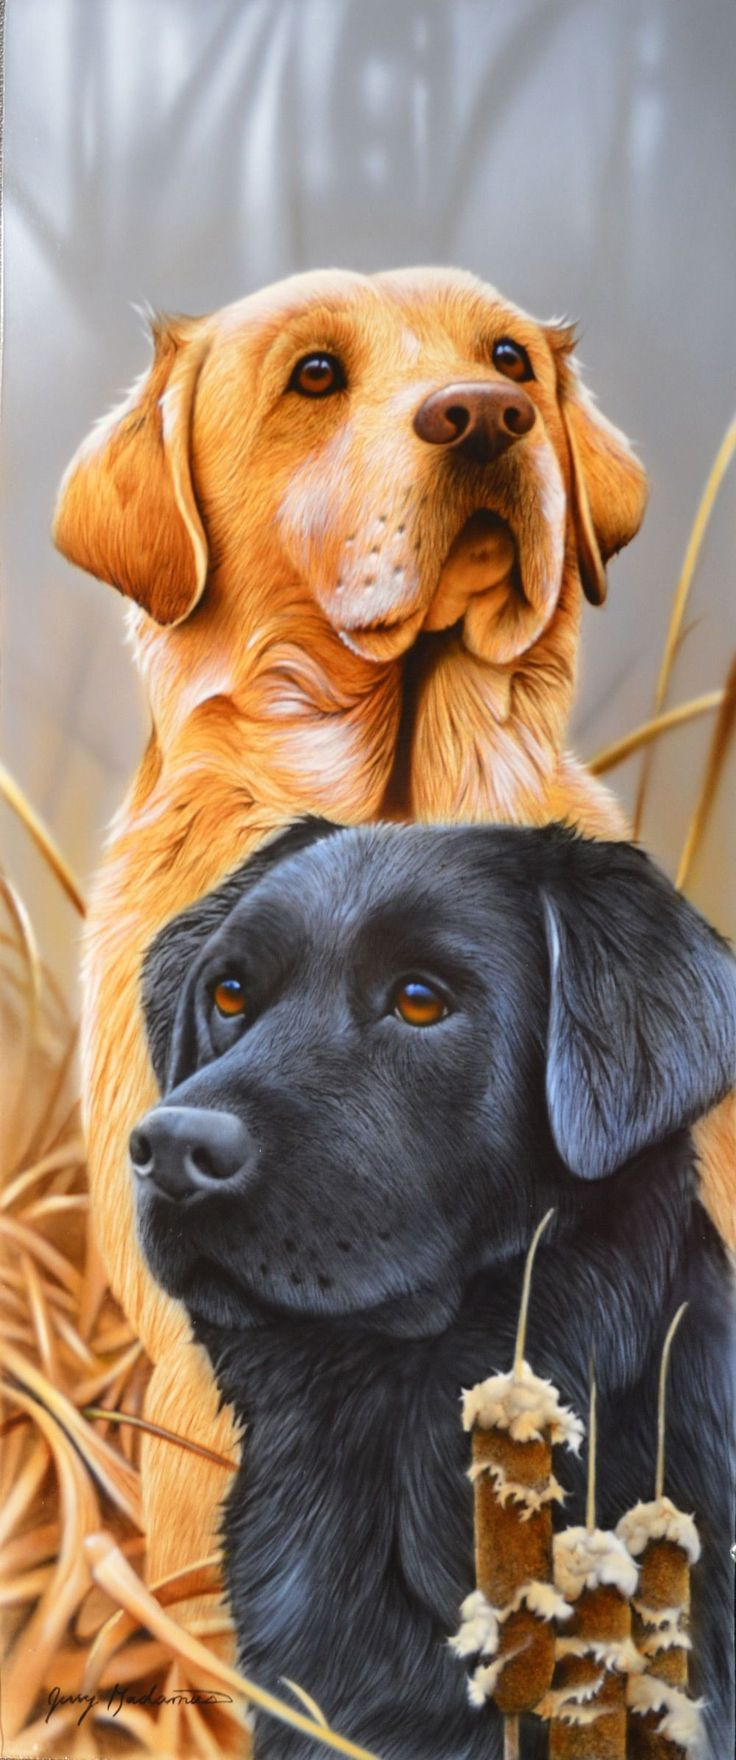 Dog paintings, Dog art, Dog portraits